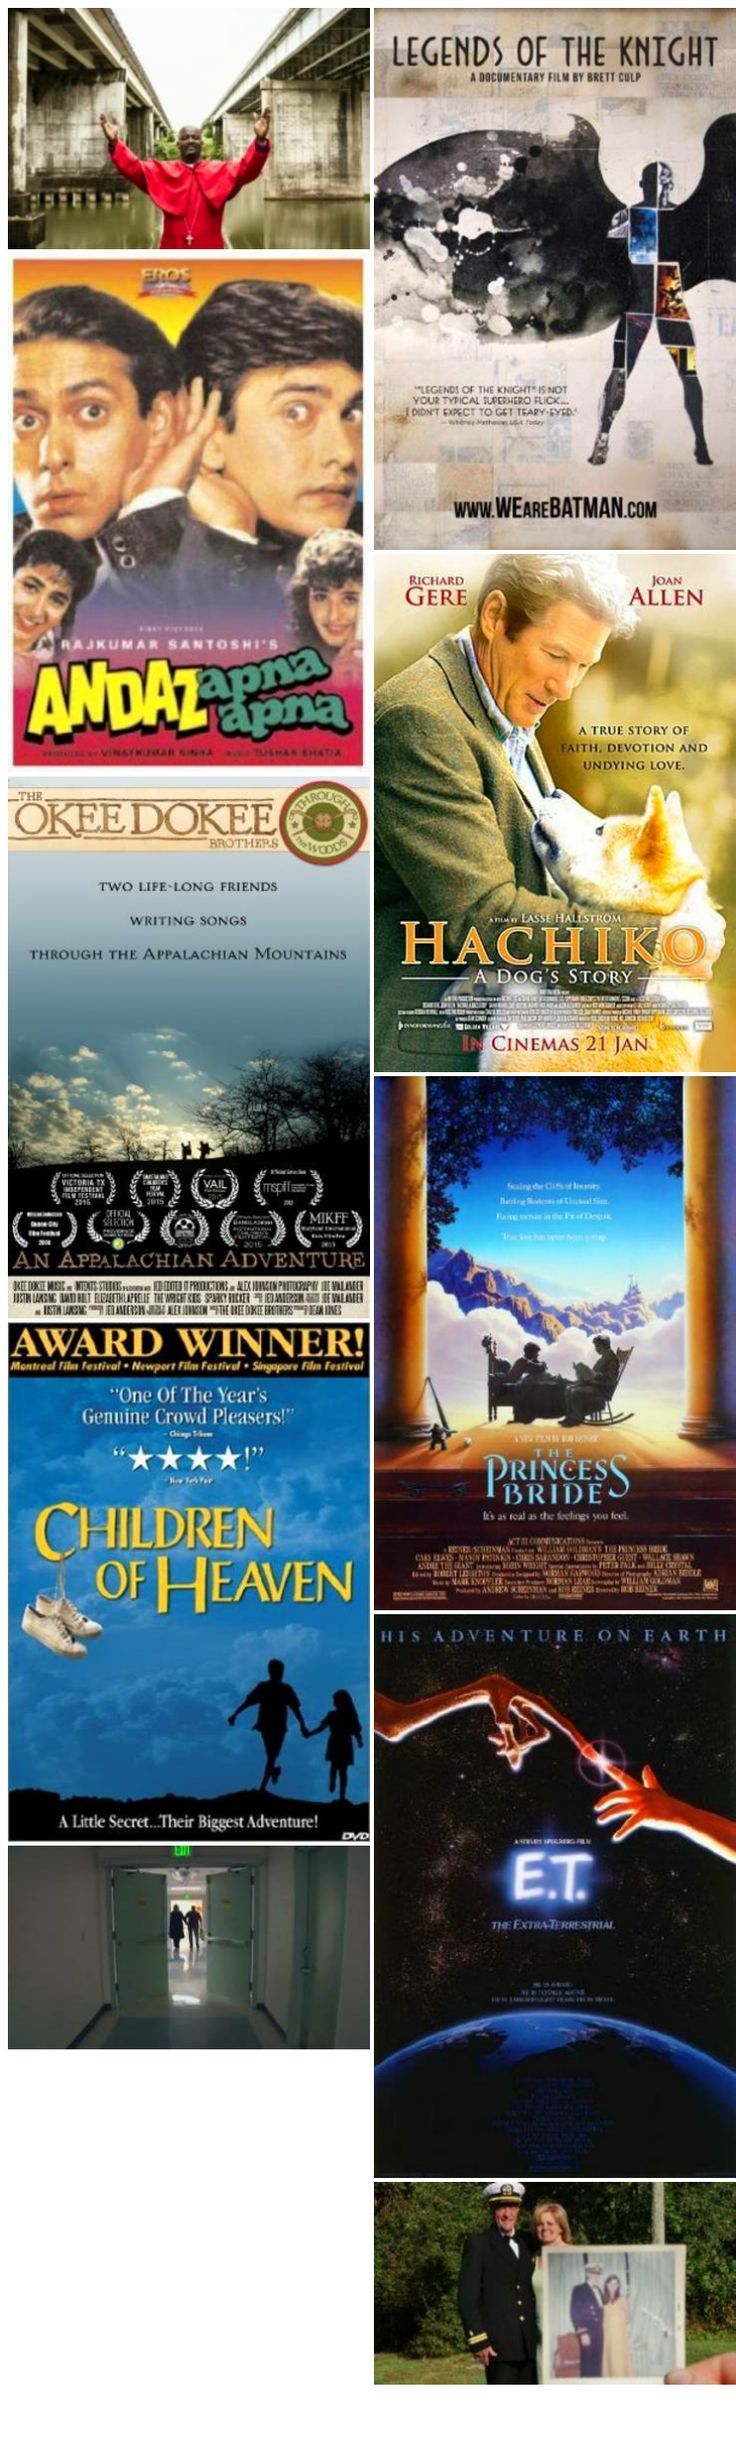 Sort and filter through the top rated family movies currently in the Netflix catalogue.